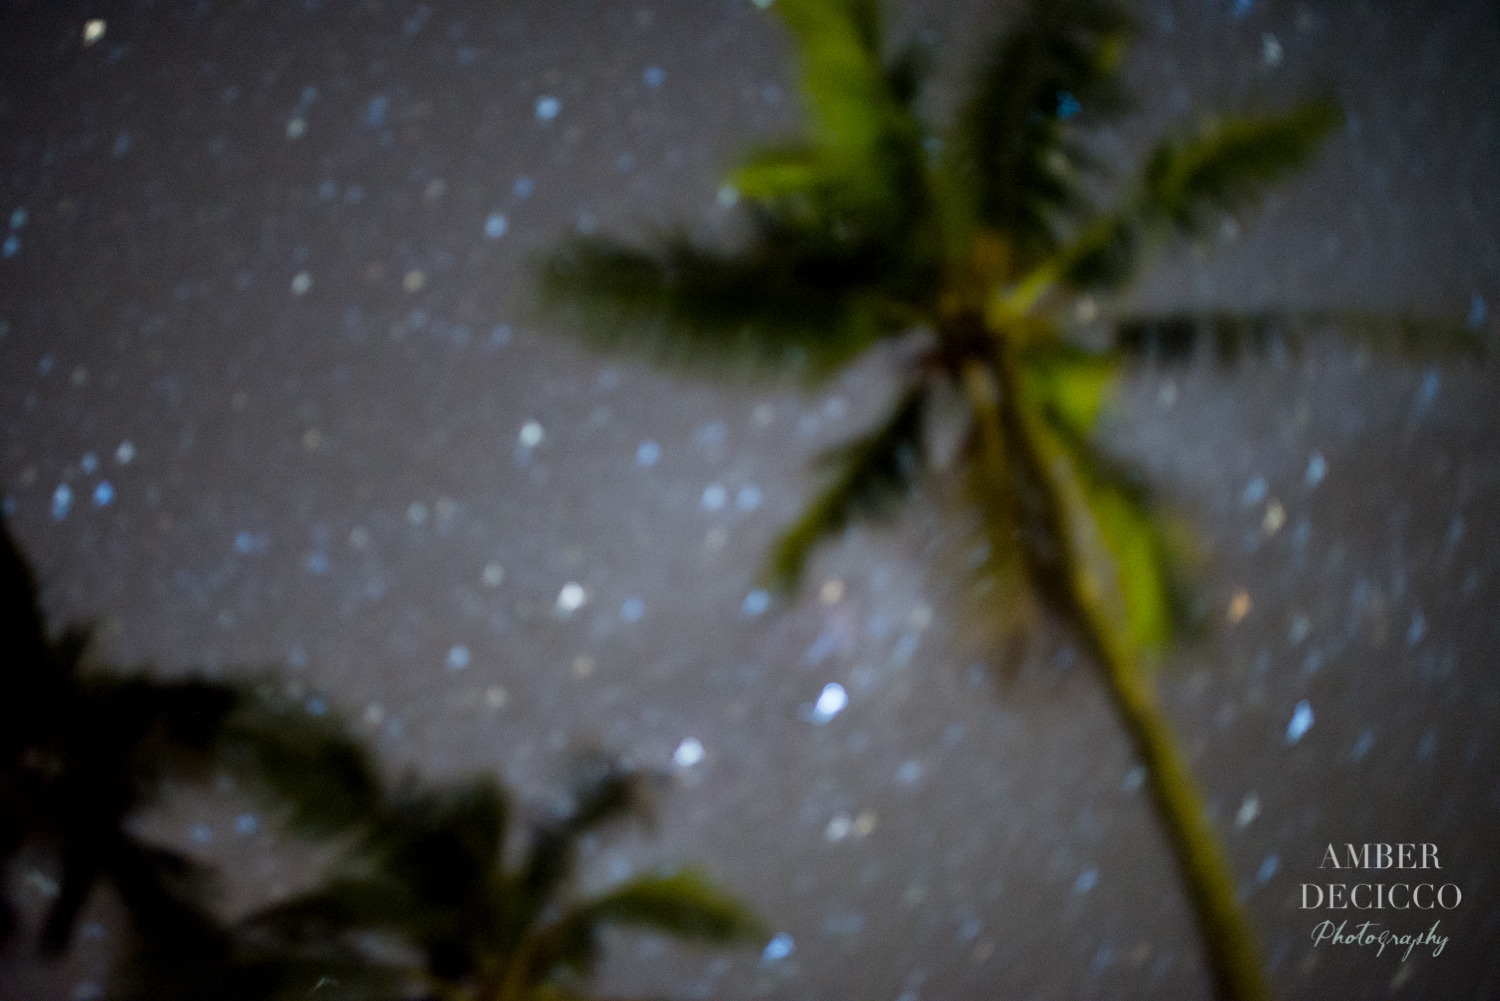 A starry night photo that I think is so beautiful. Sometimes blurry photos just work.